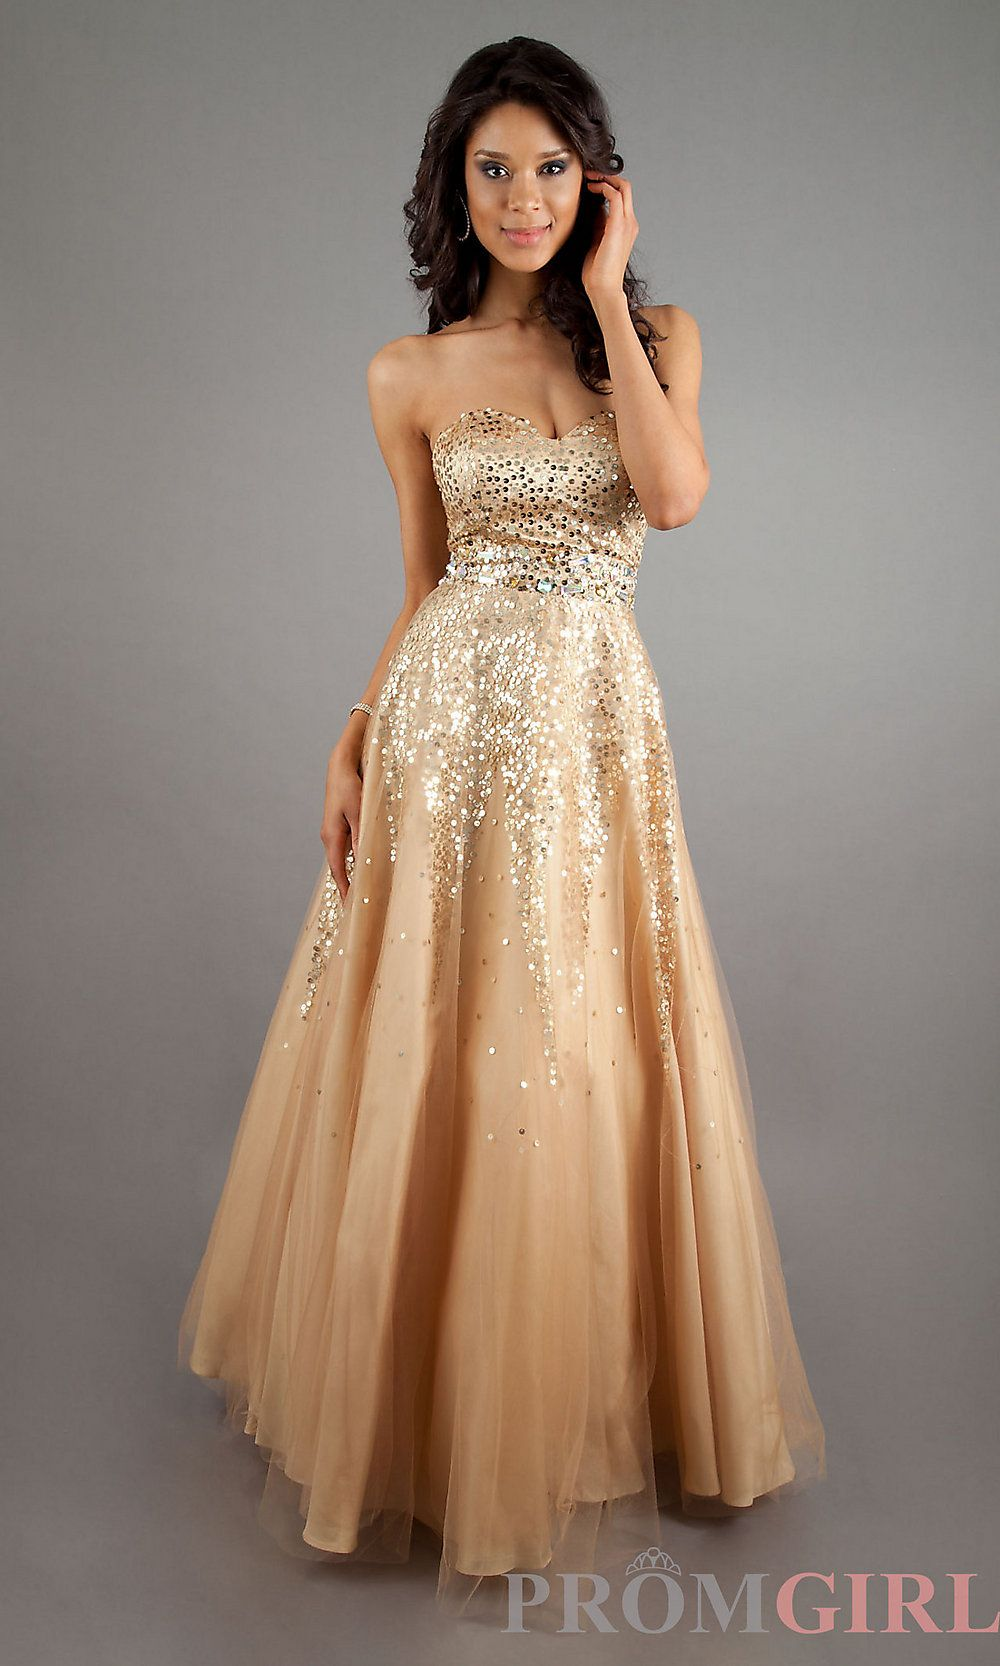 17 Best images about Prom Dress on Pinterest | Gold sparkly dress ...